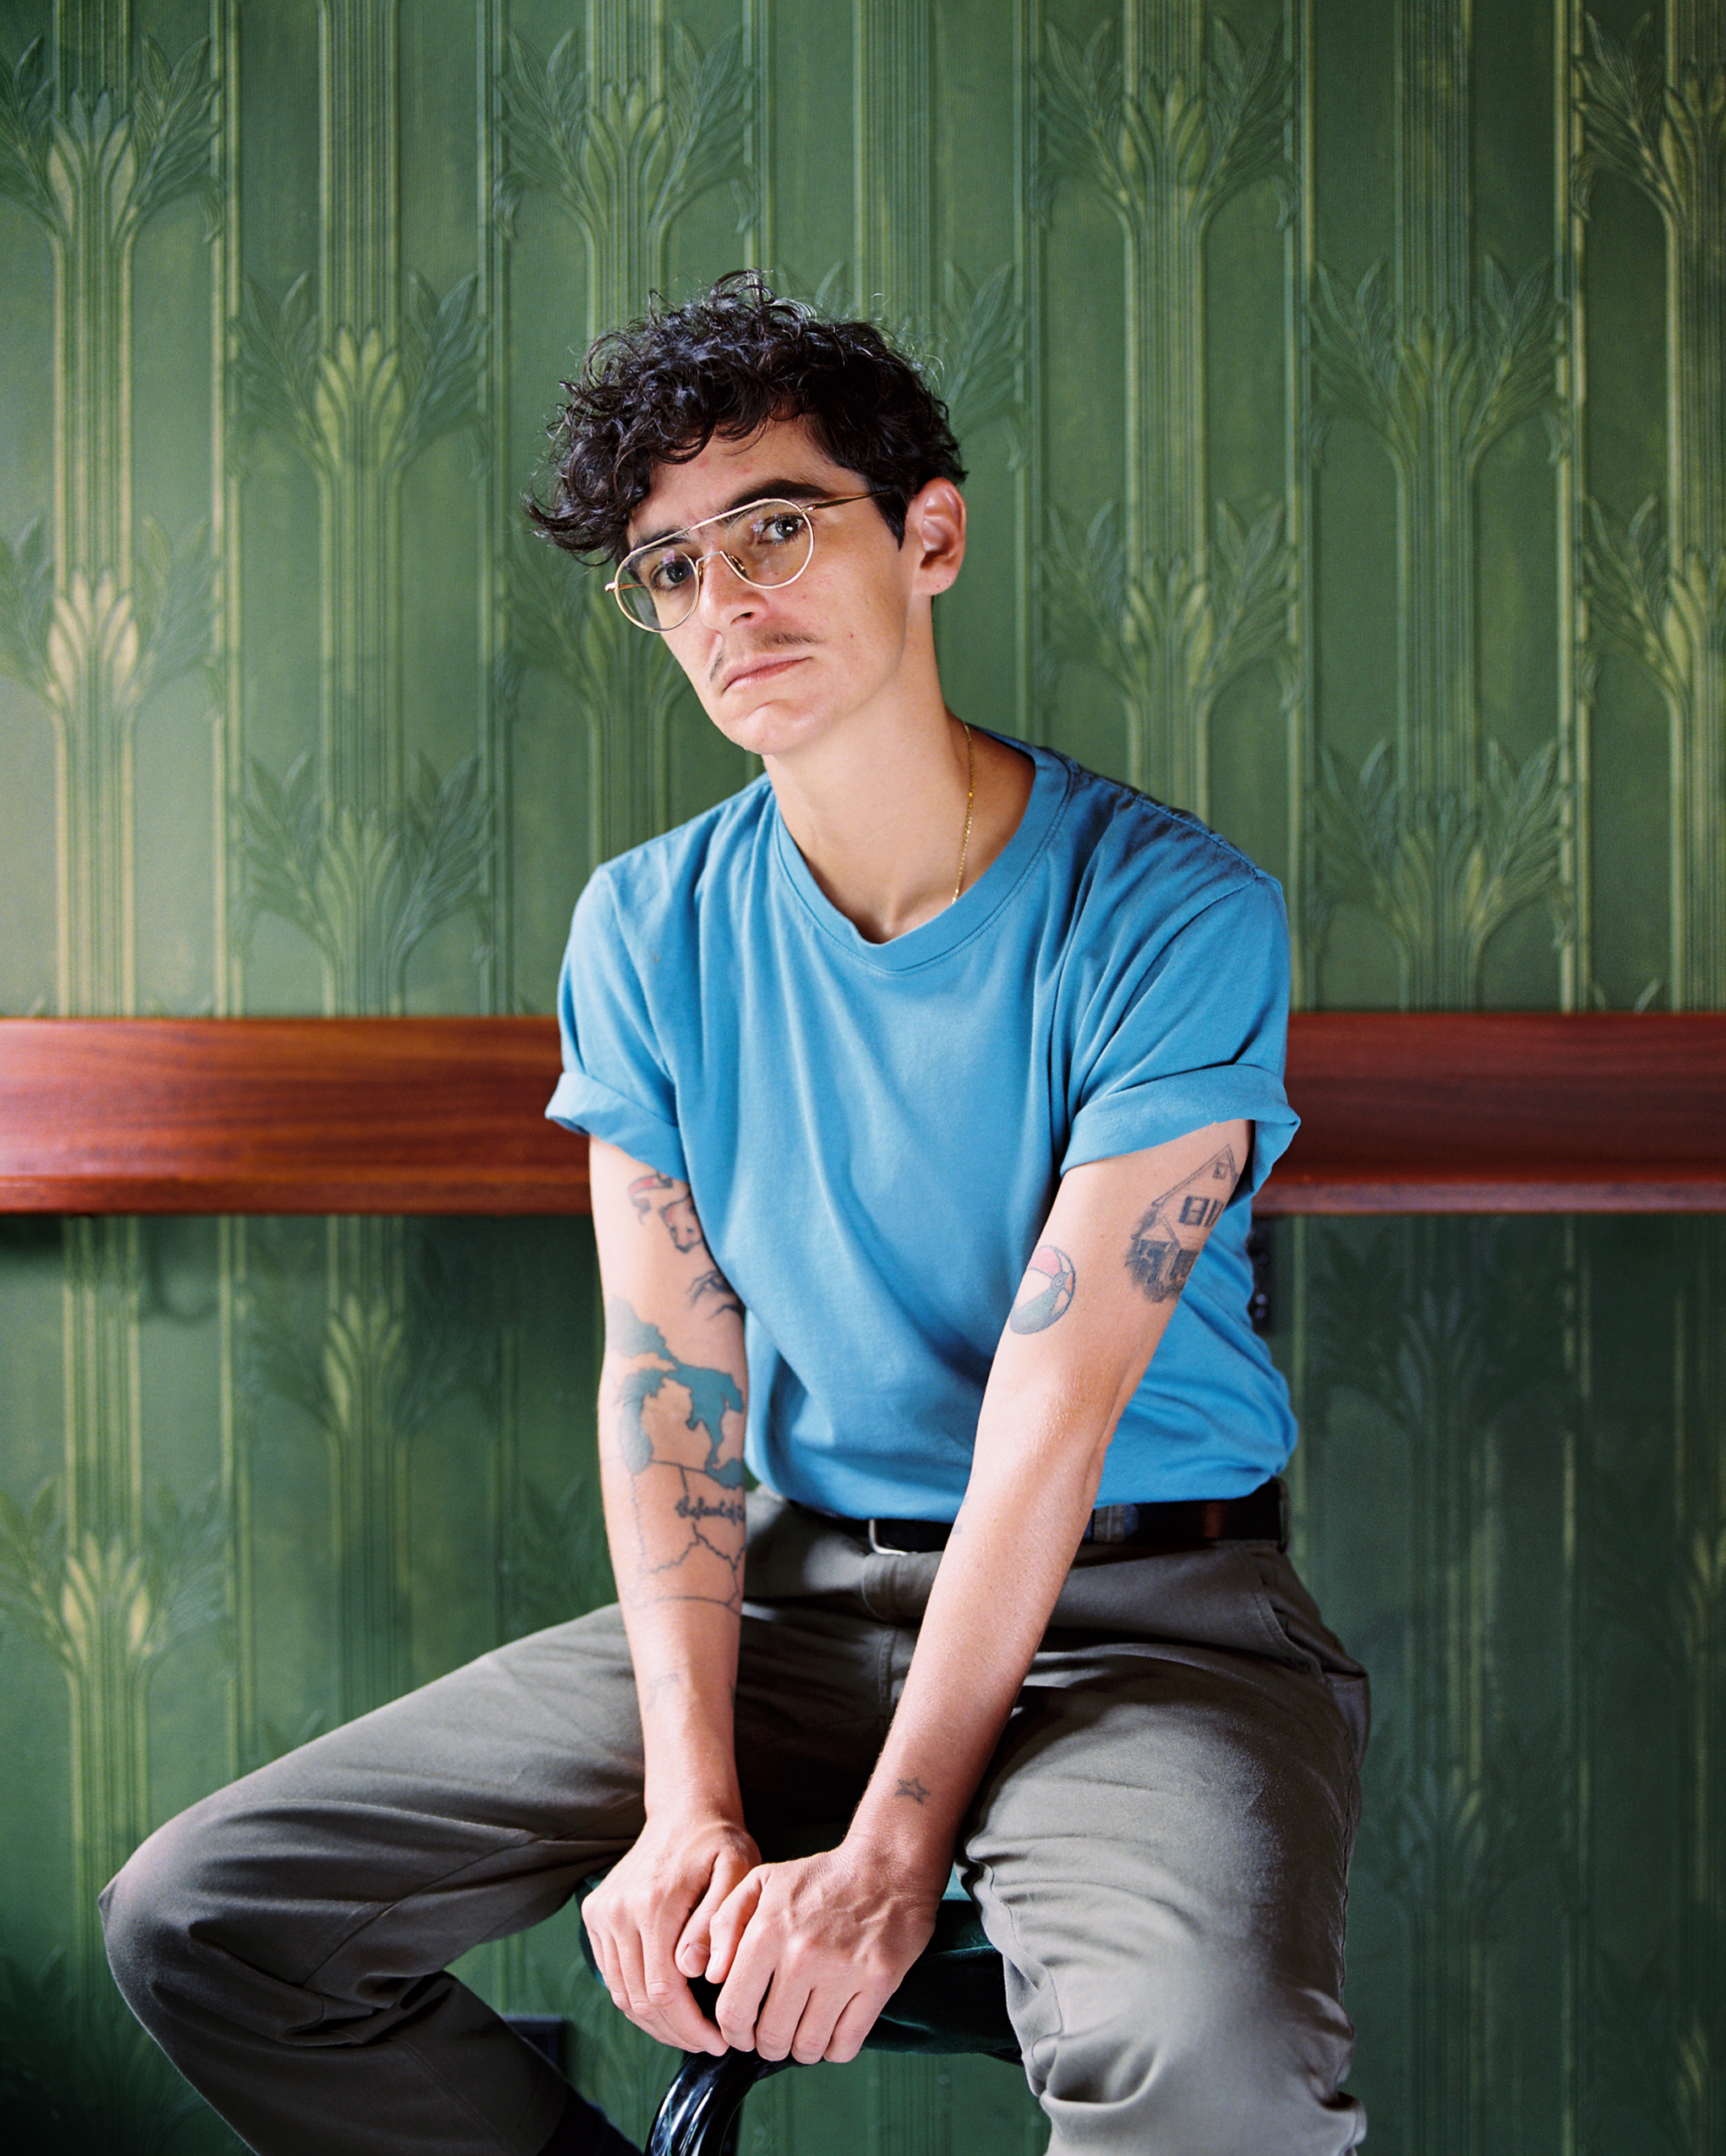 JD Samson shot for nycgo.com. 2018